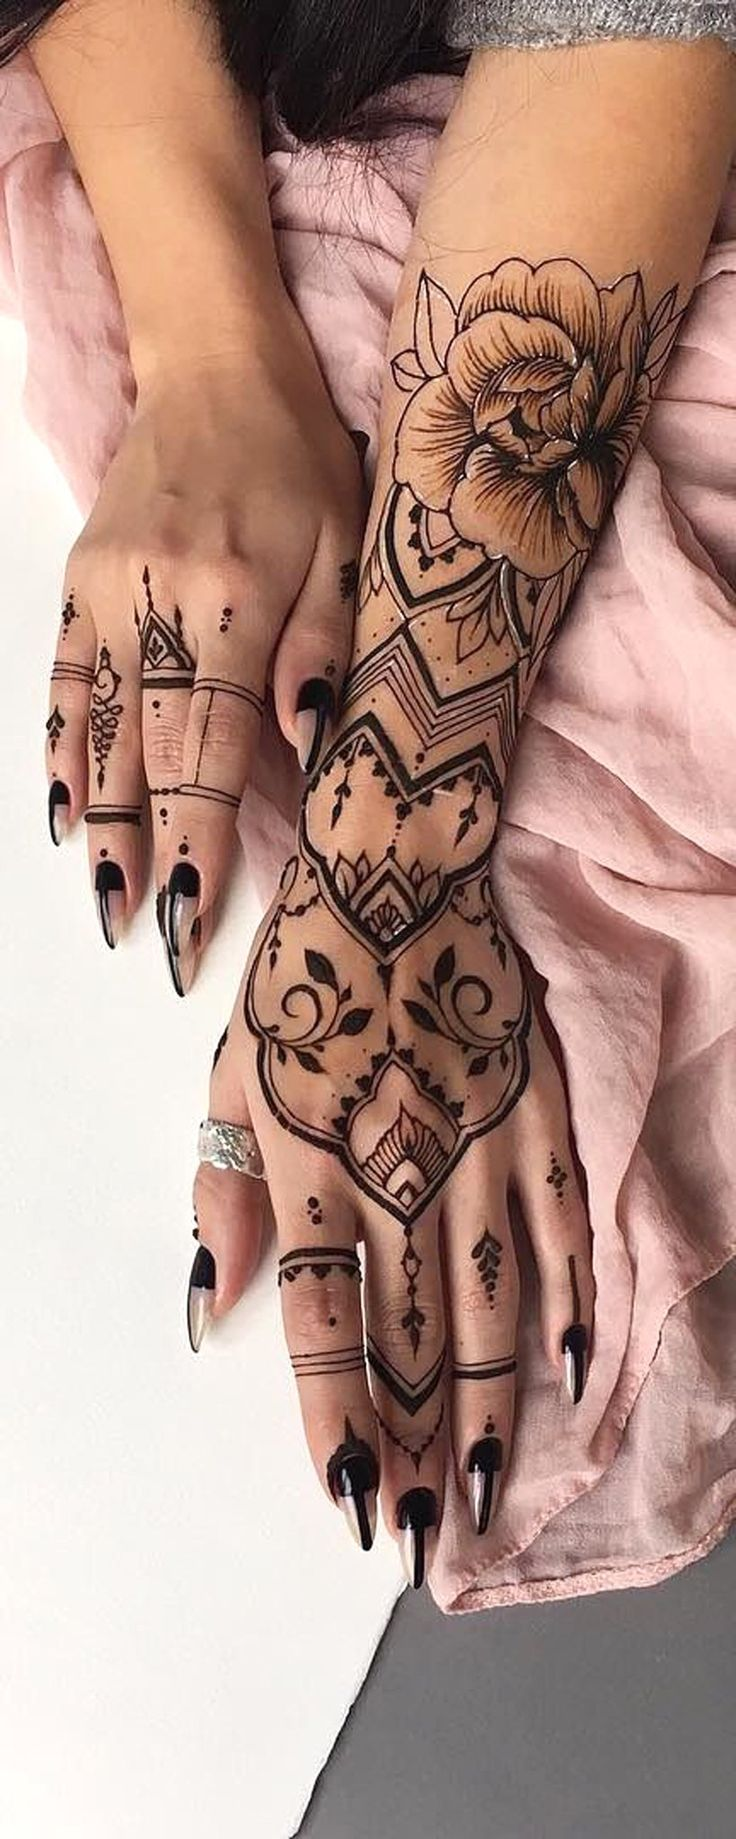 39 best Henna images on Pinterest | Henna tattoos, Hennas and Mehendi - Henna Tattoo Stift